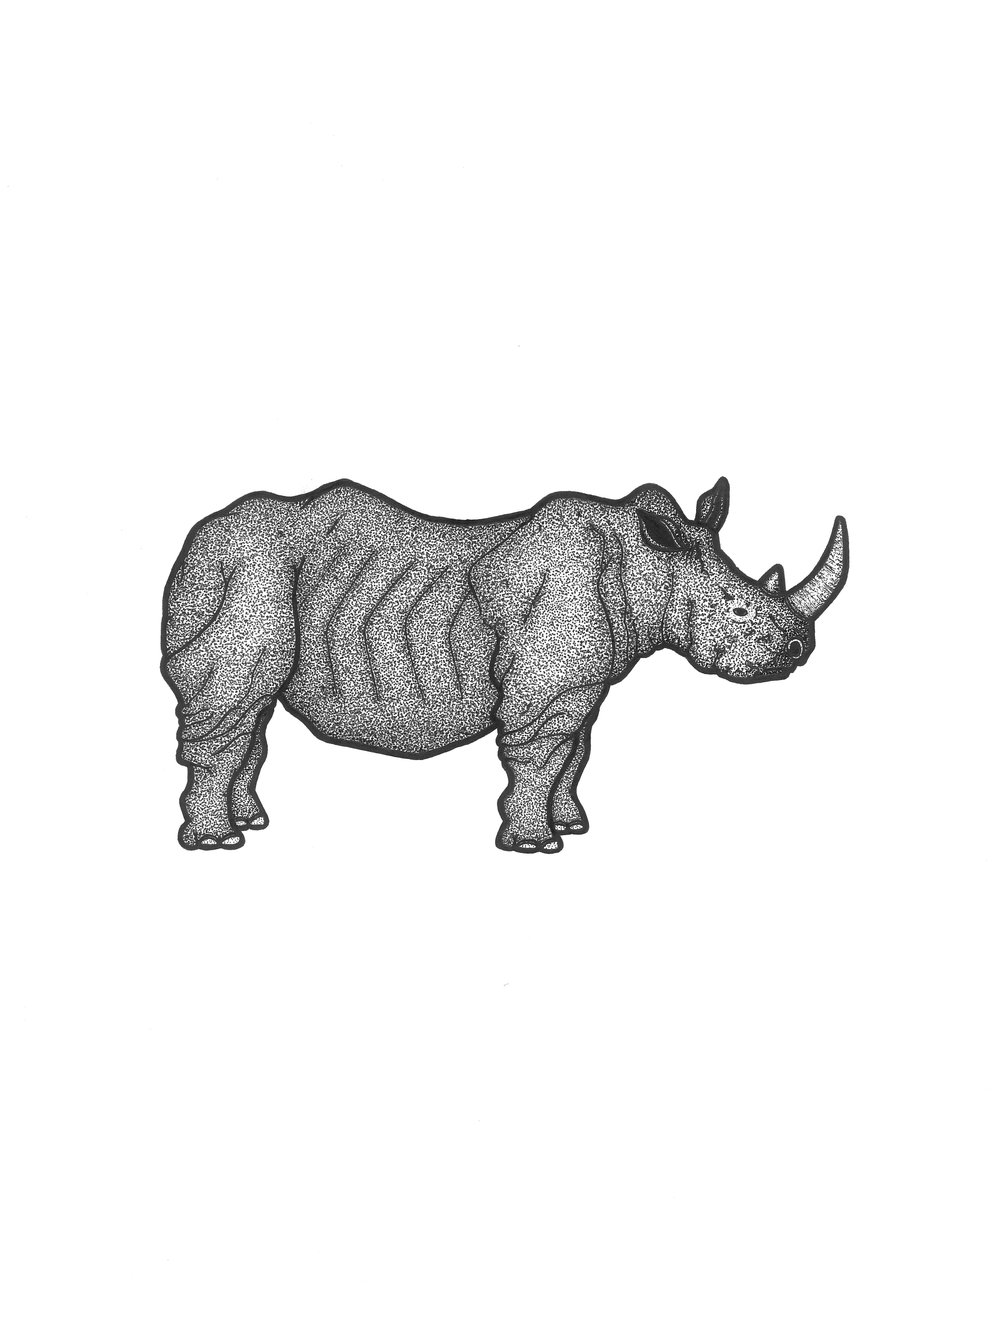 Rhino   Illustration  Prints available